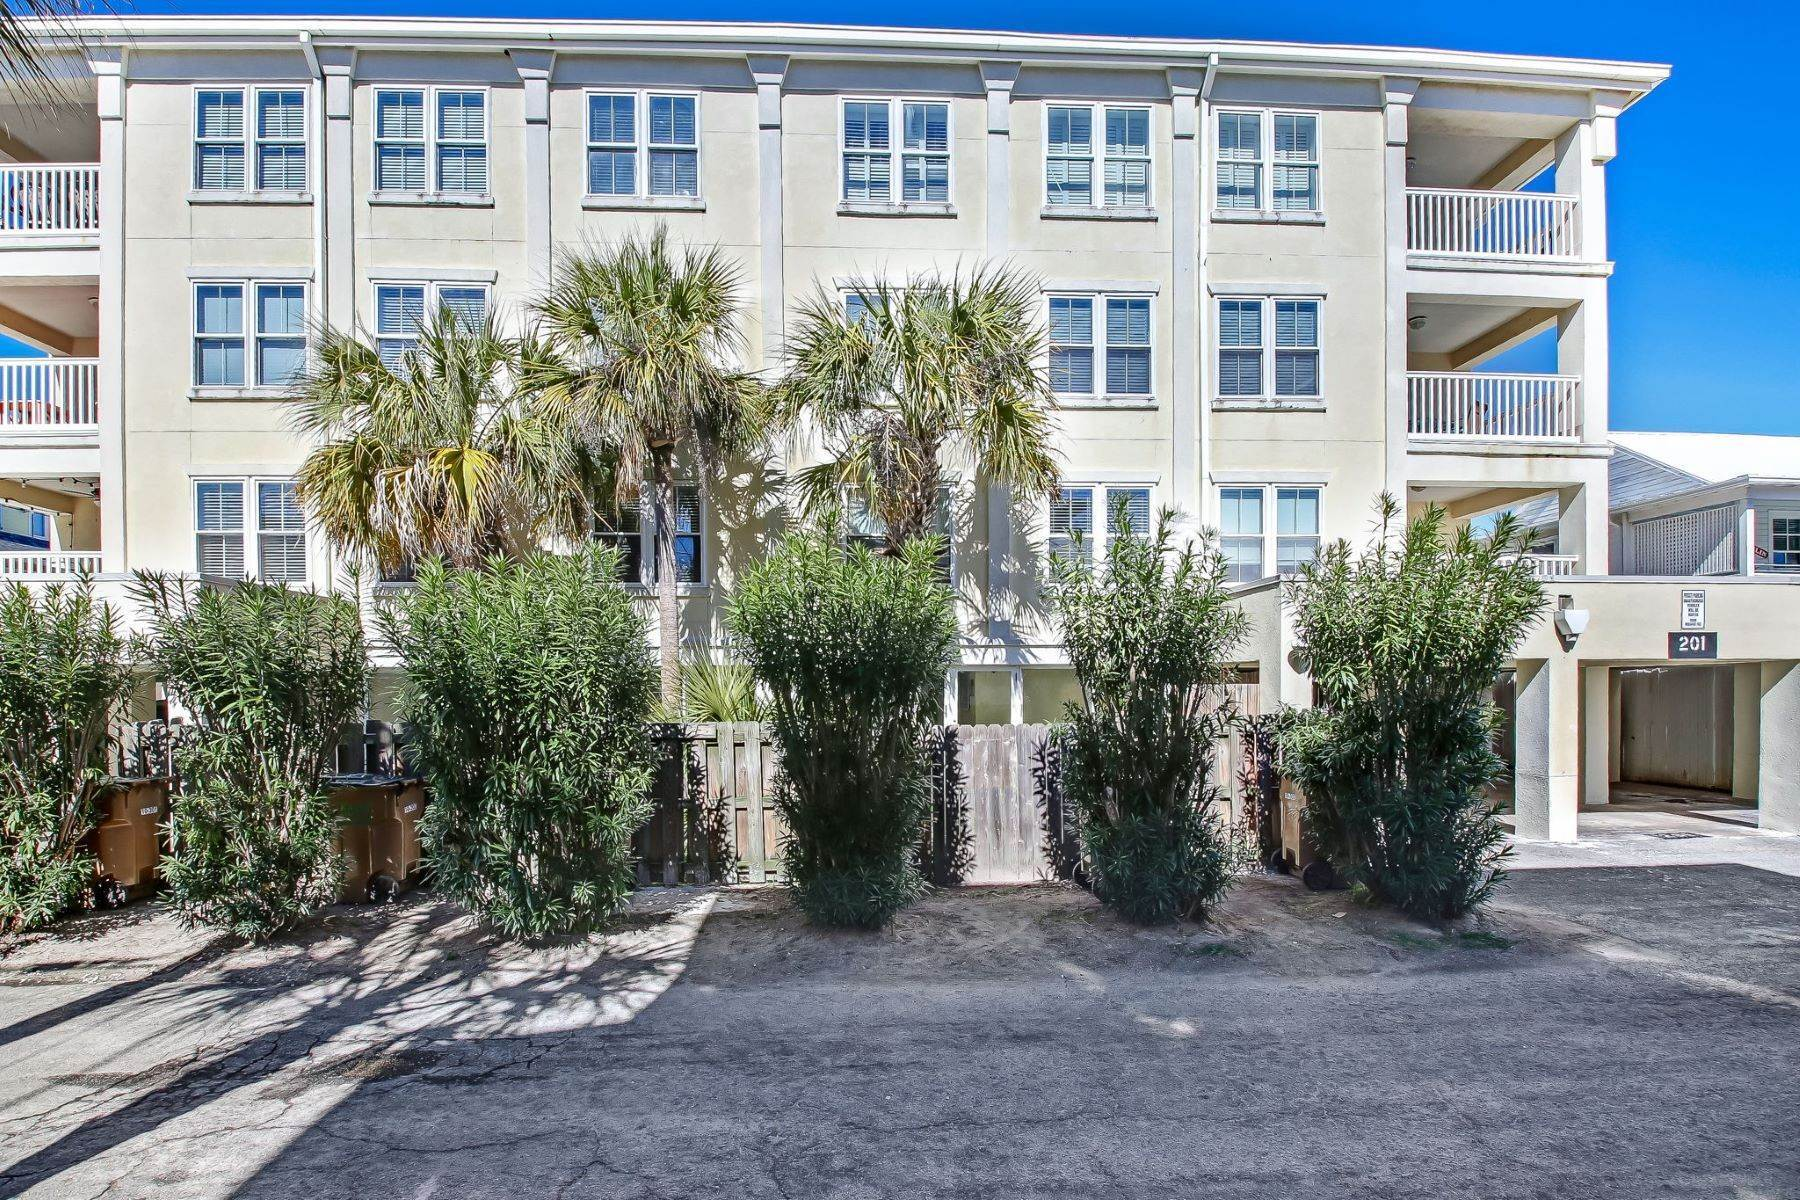 Condominiums for Sale at Enjoy The Beauty of Tybee In This Fully Furnished Condo 10 TS Chu Terrace Unit #301 Tybee Island, Georgia 31328 United States